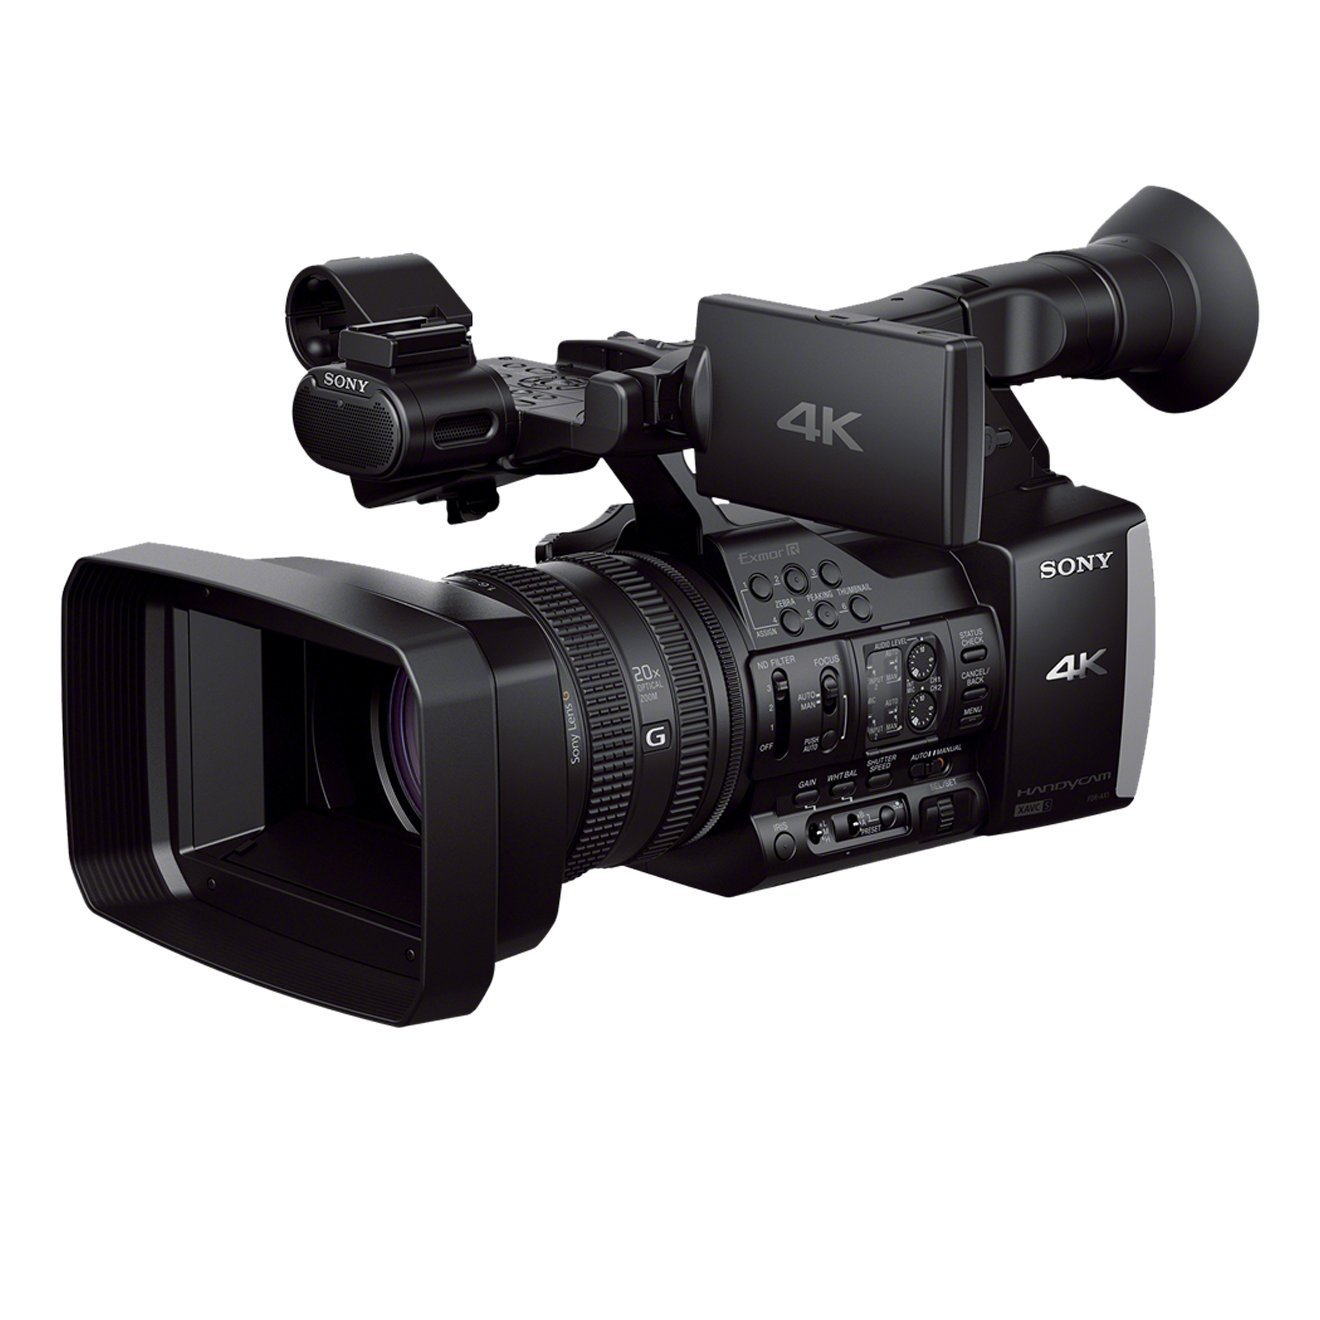 "Sony Handycam FDR-AX1E - Videocámara Full HD 1080p (8.3 Mp, pantalla de 3.5"", zoom óptico 20x, estabilizador óptico, video Full HD), negro"